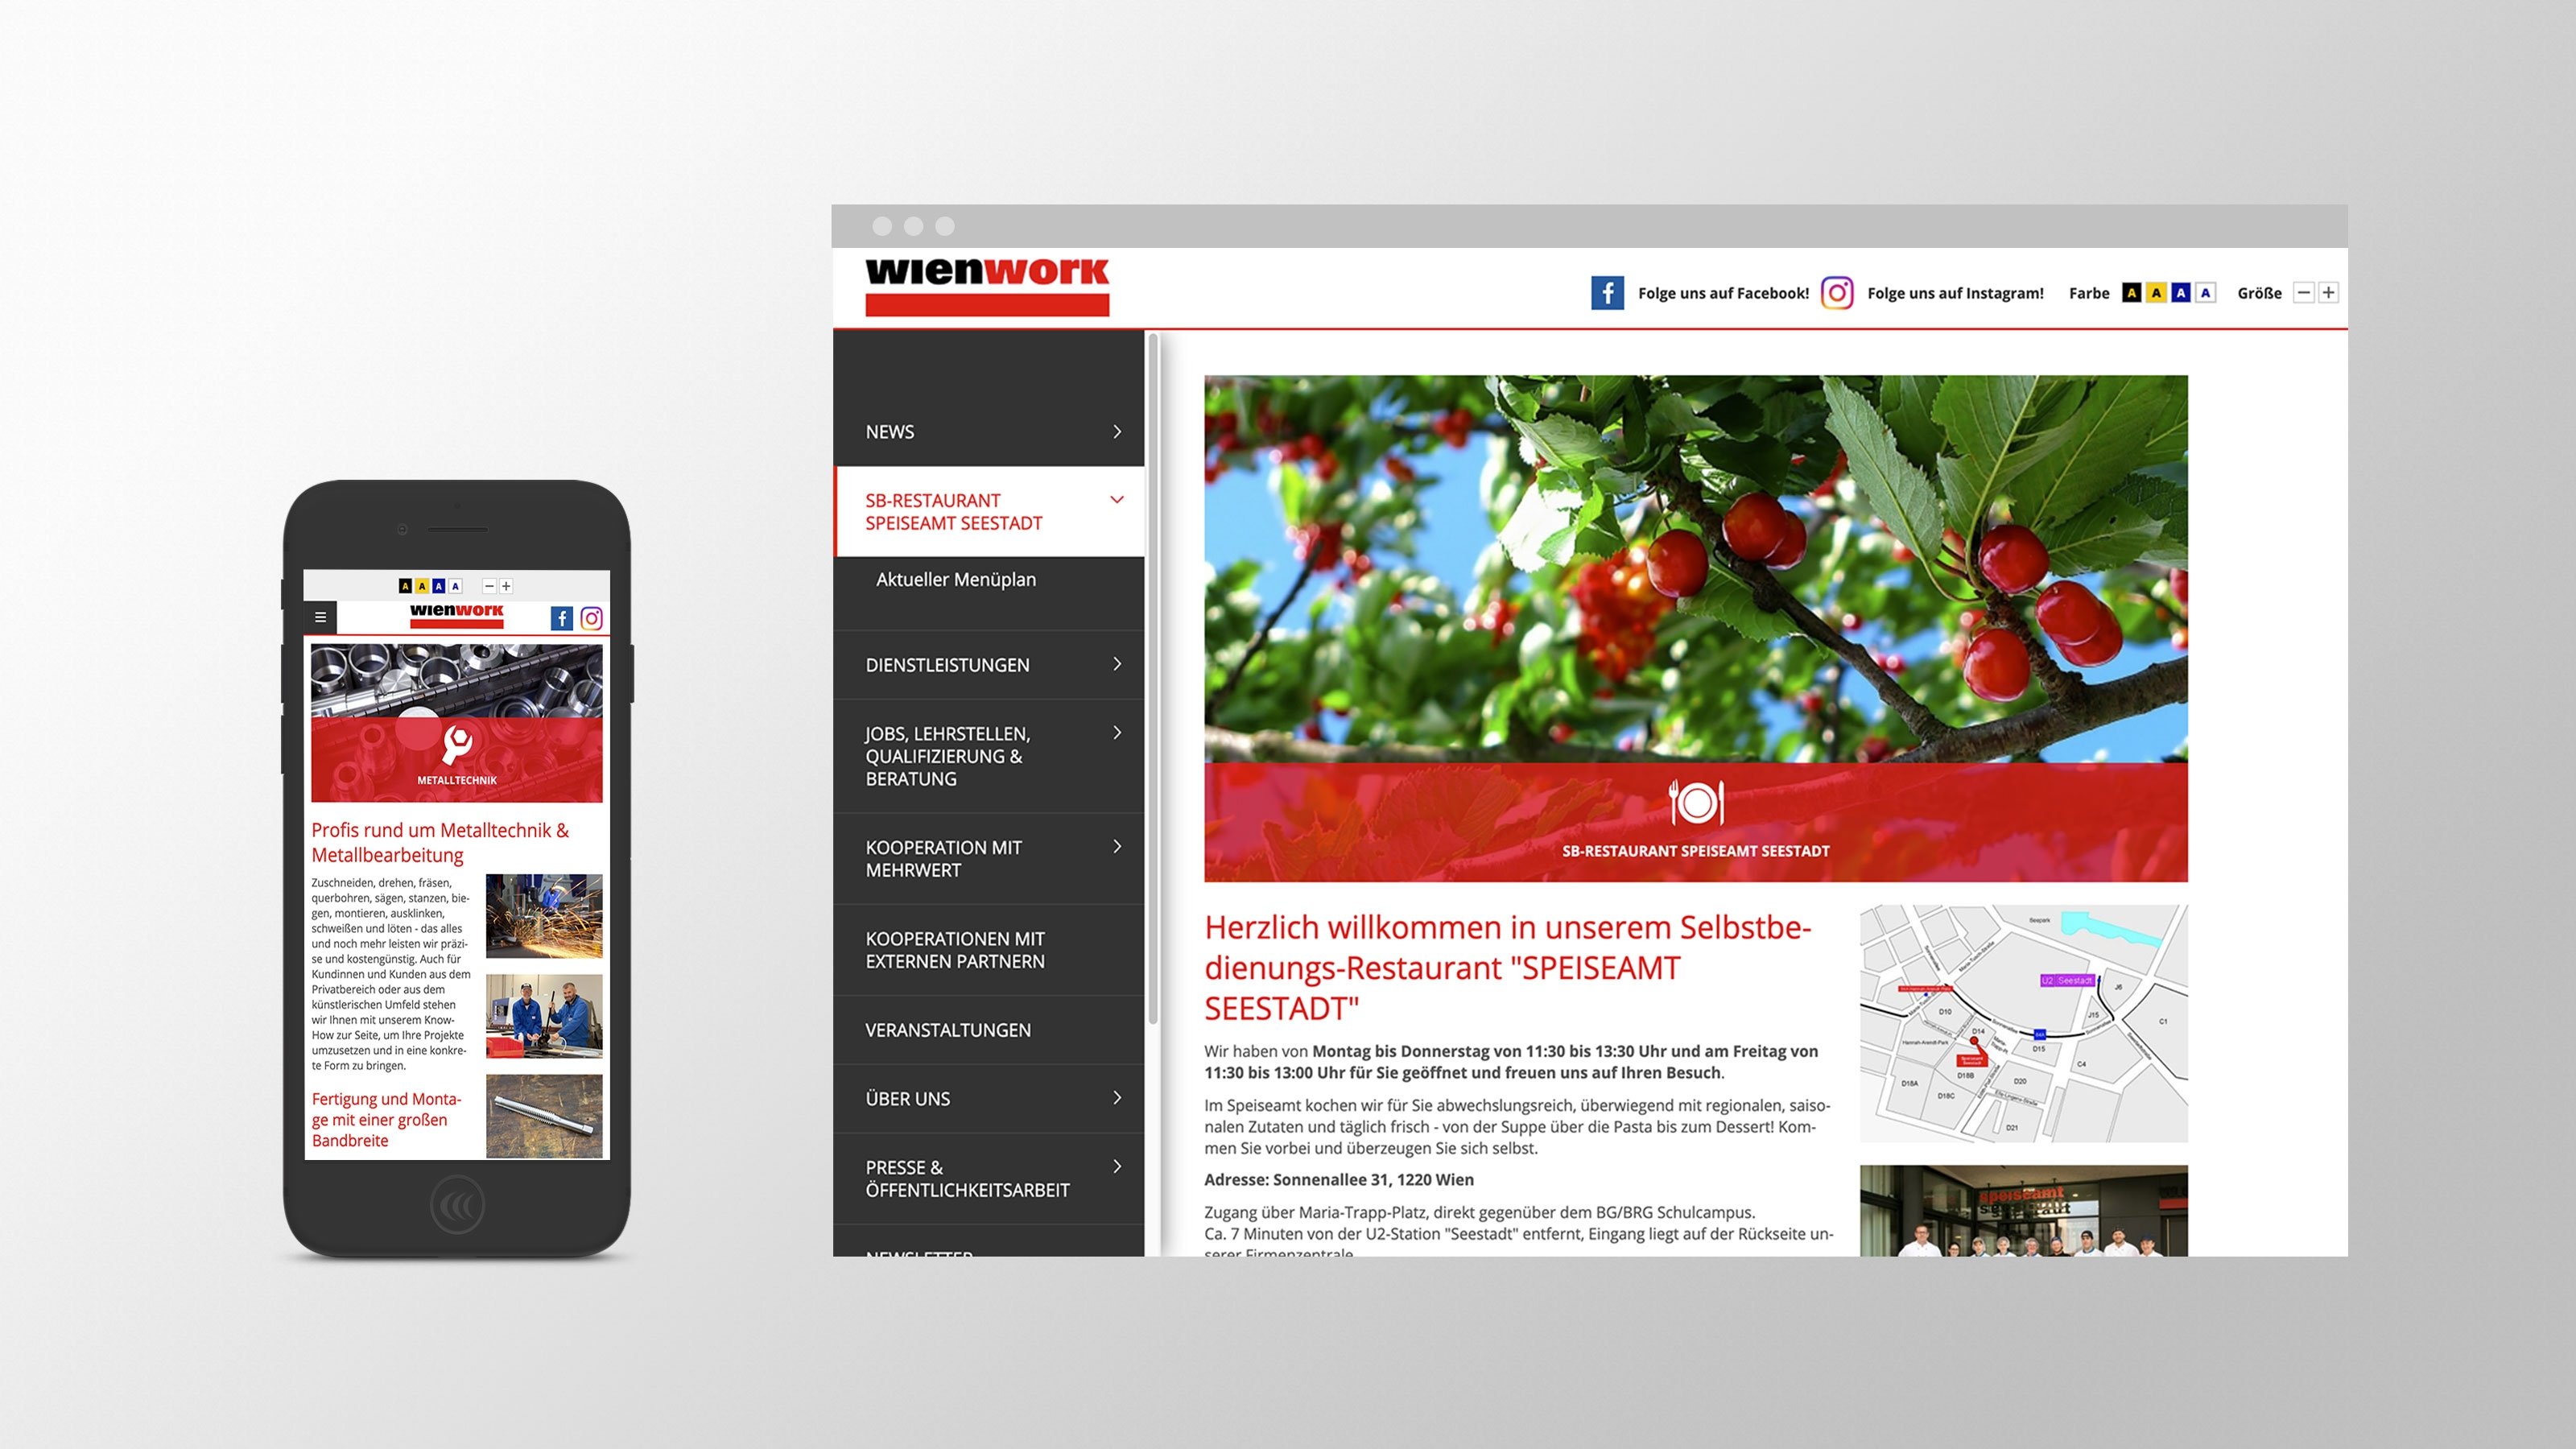 Wien Work | wienwork.at | 2016 (Responsive Phone Desktop) © echonet communication